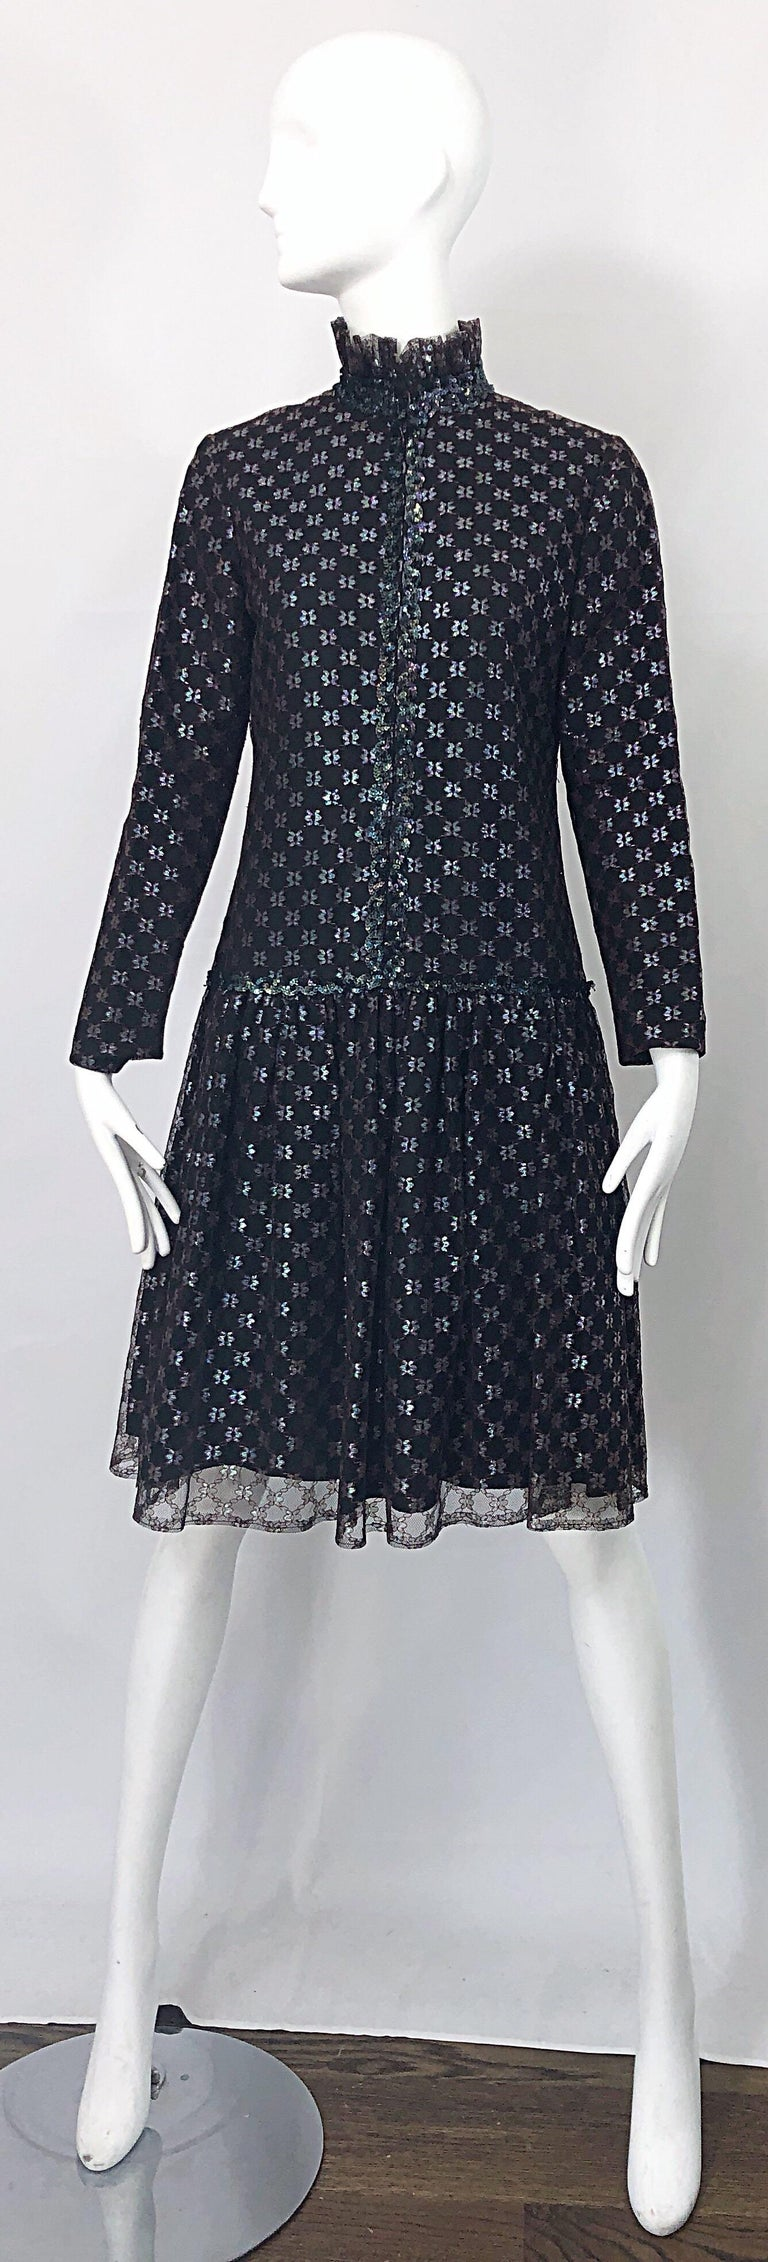 Chic 70s vintage OSCAR DE LA RENTA black and burgundy red long sleeve drop waist dress! Features a Victorian / Renaissance vibe that was very distinct in the early 1970s. Features black taffeta, with a black and burgundy tulle overlay. Hundreds of